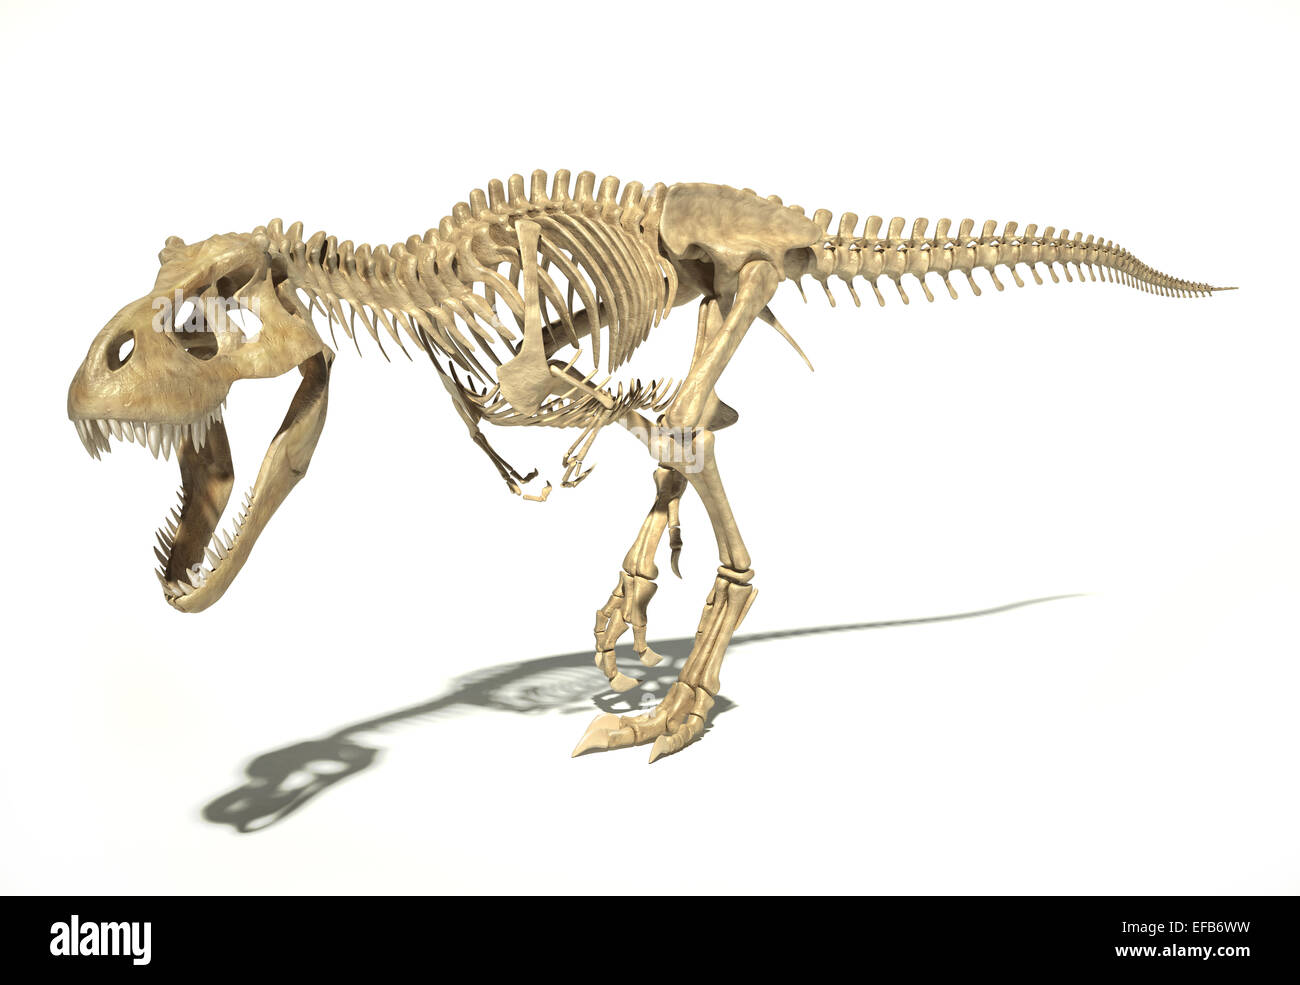 T-Rex dinosaur photo-realistic and scientifically correct, full skeleton in dynamic pose, perspective view. On white - Stock Image